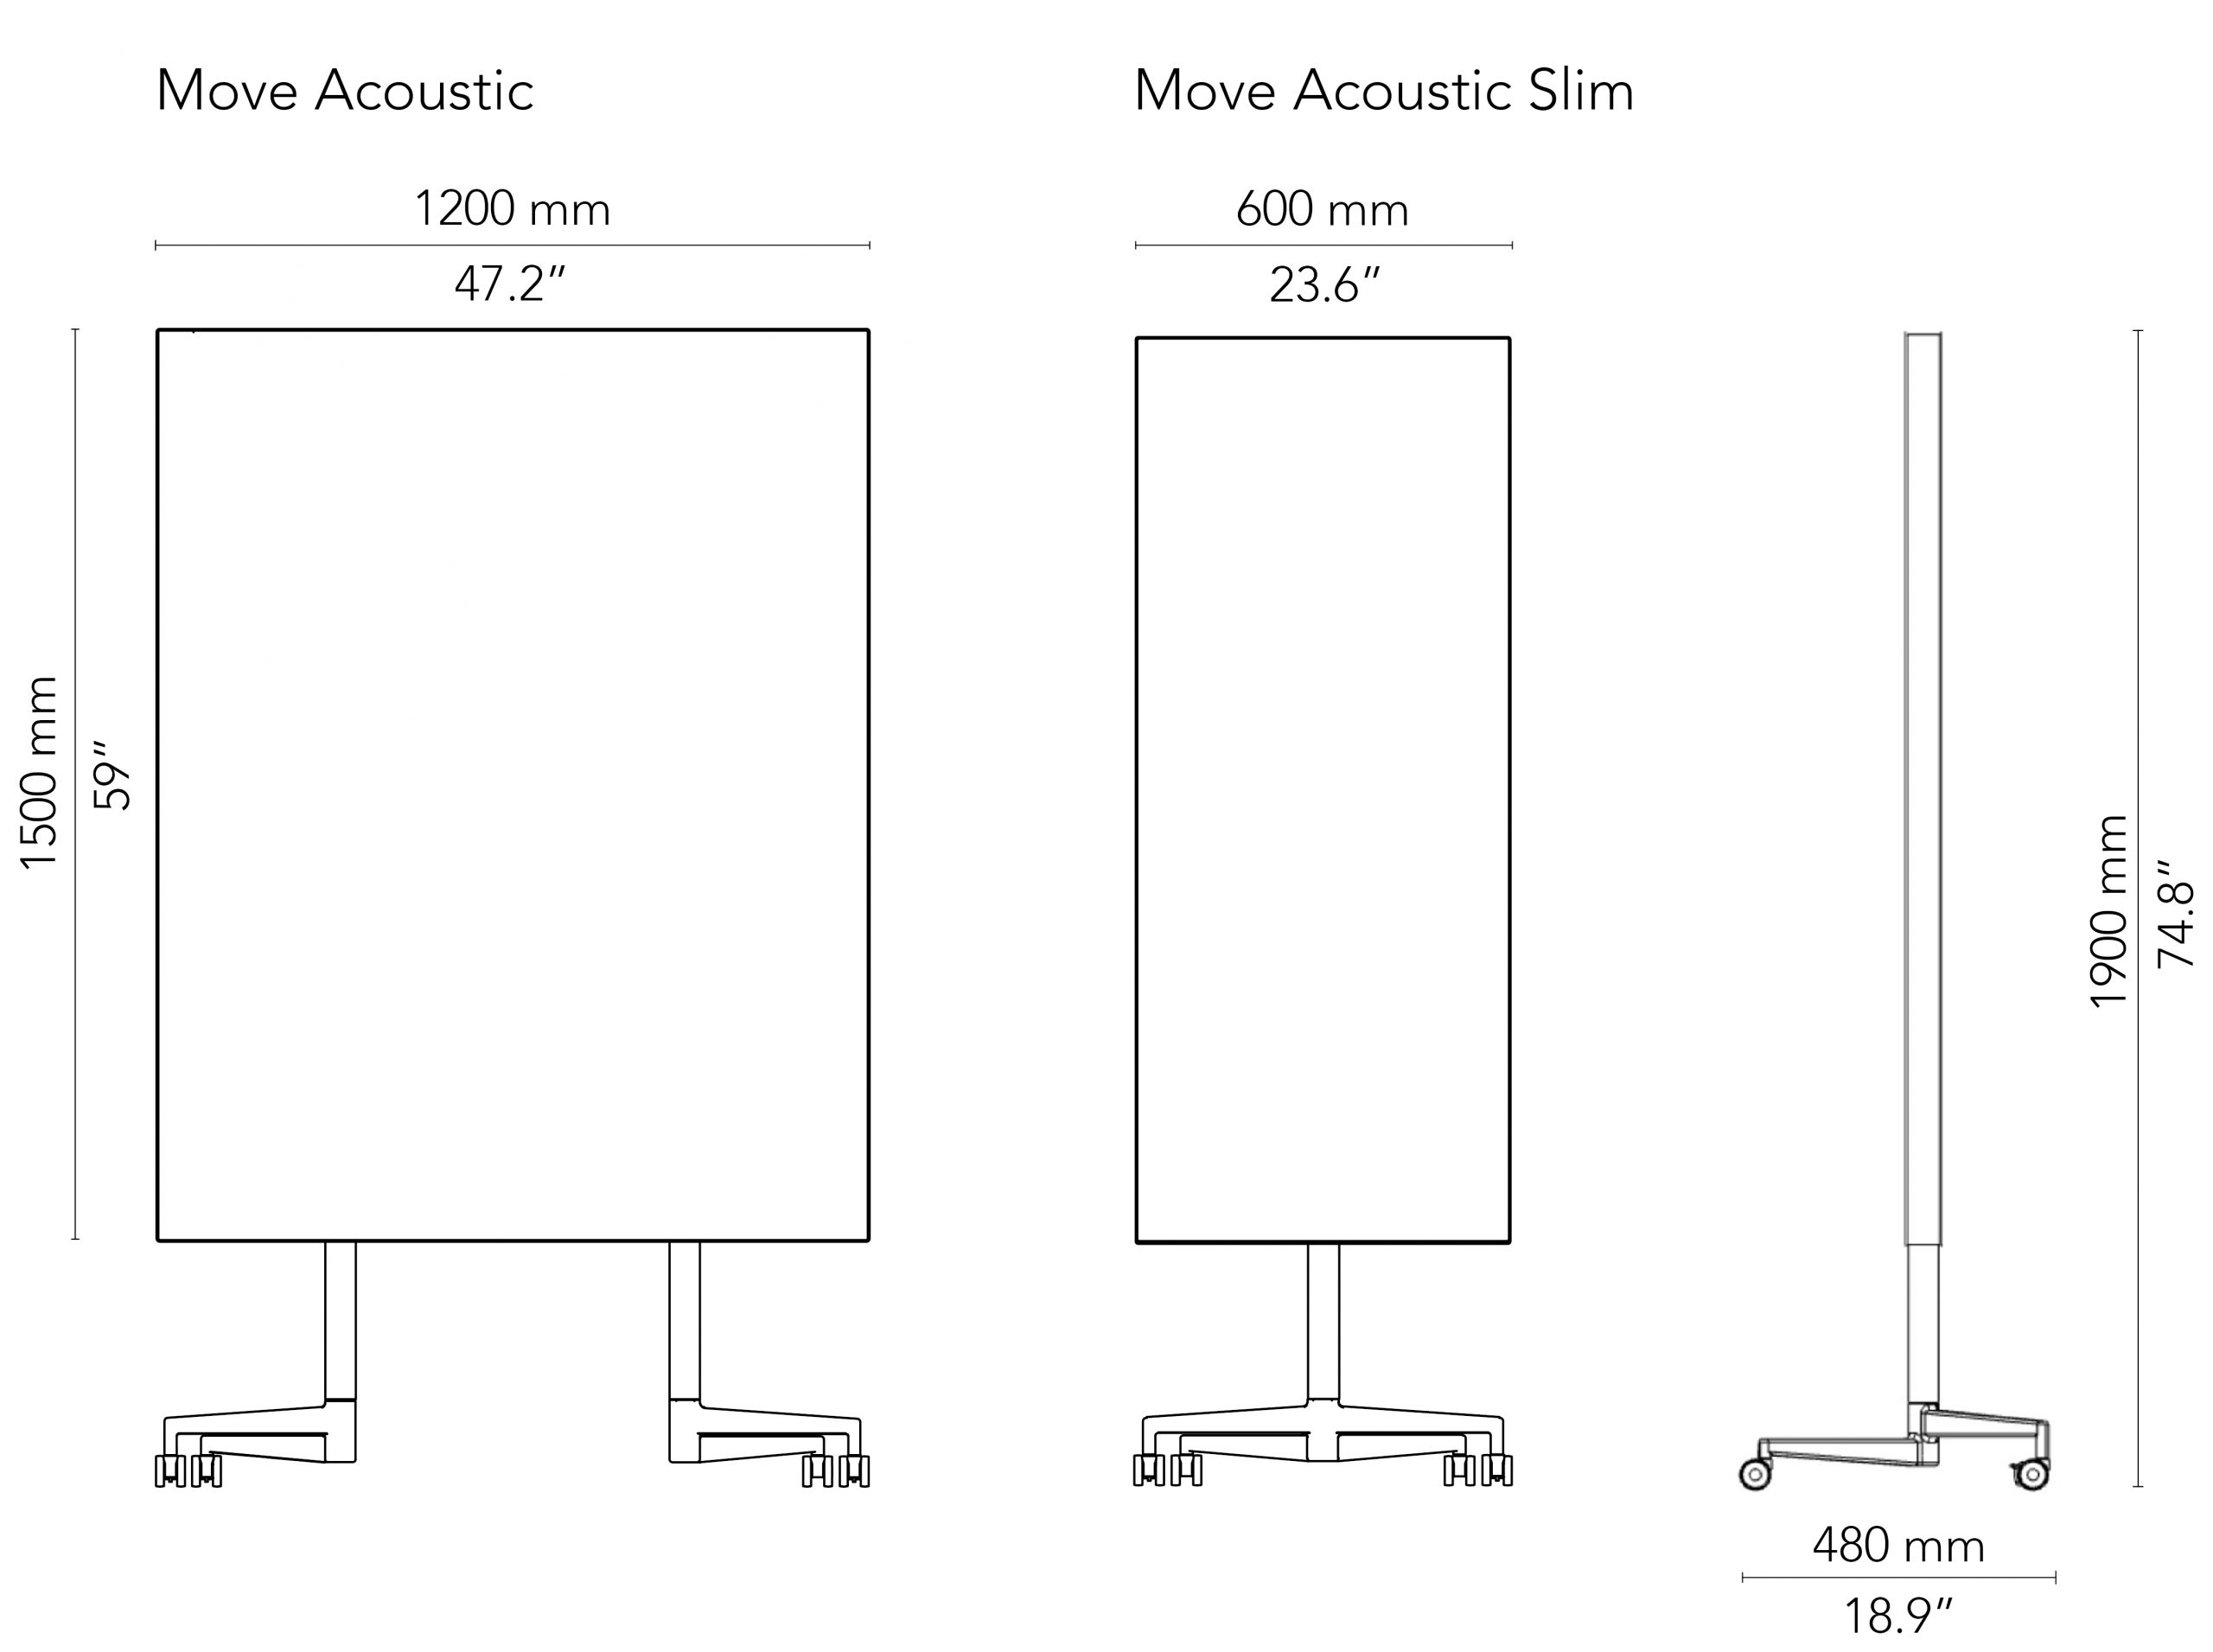 CHAT BOARD Move Acoustic drawings with measurements in mm